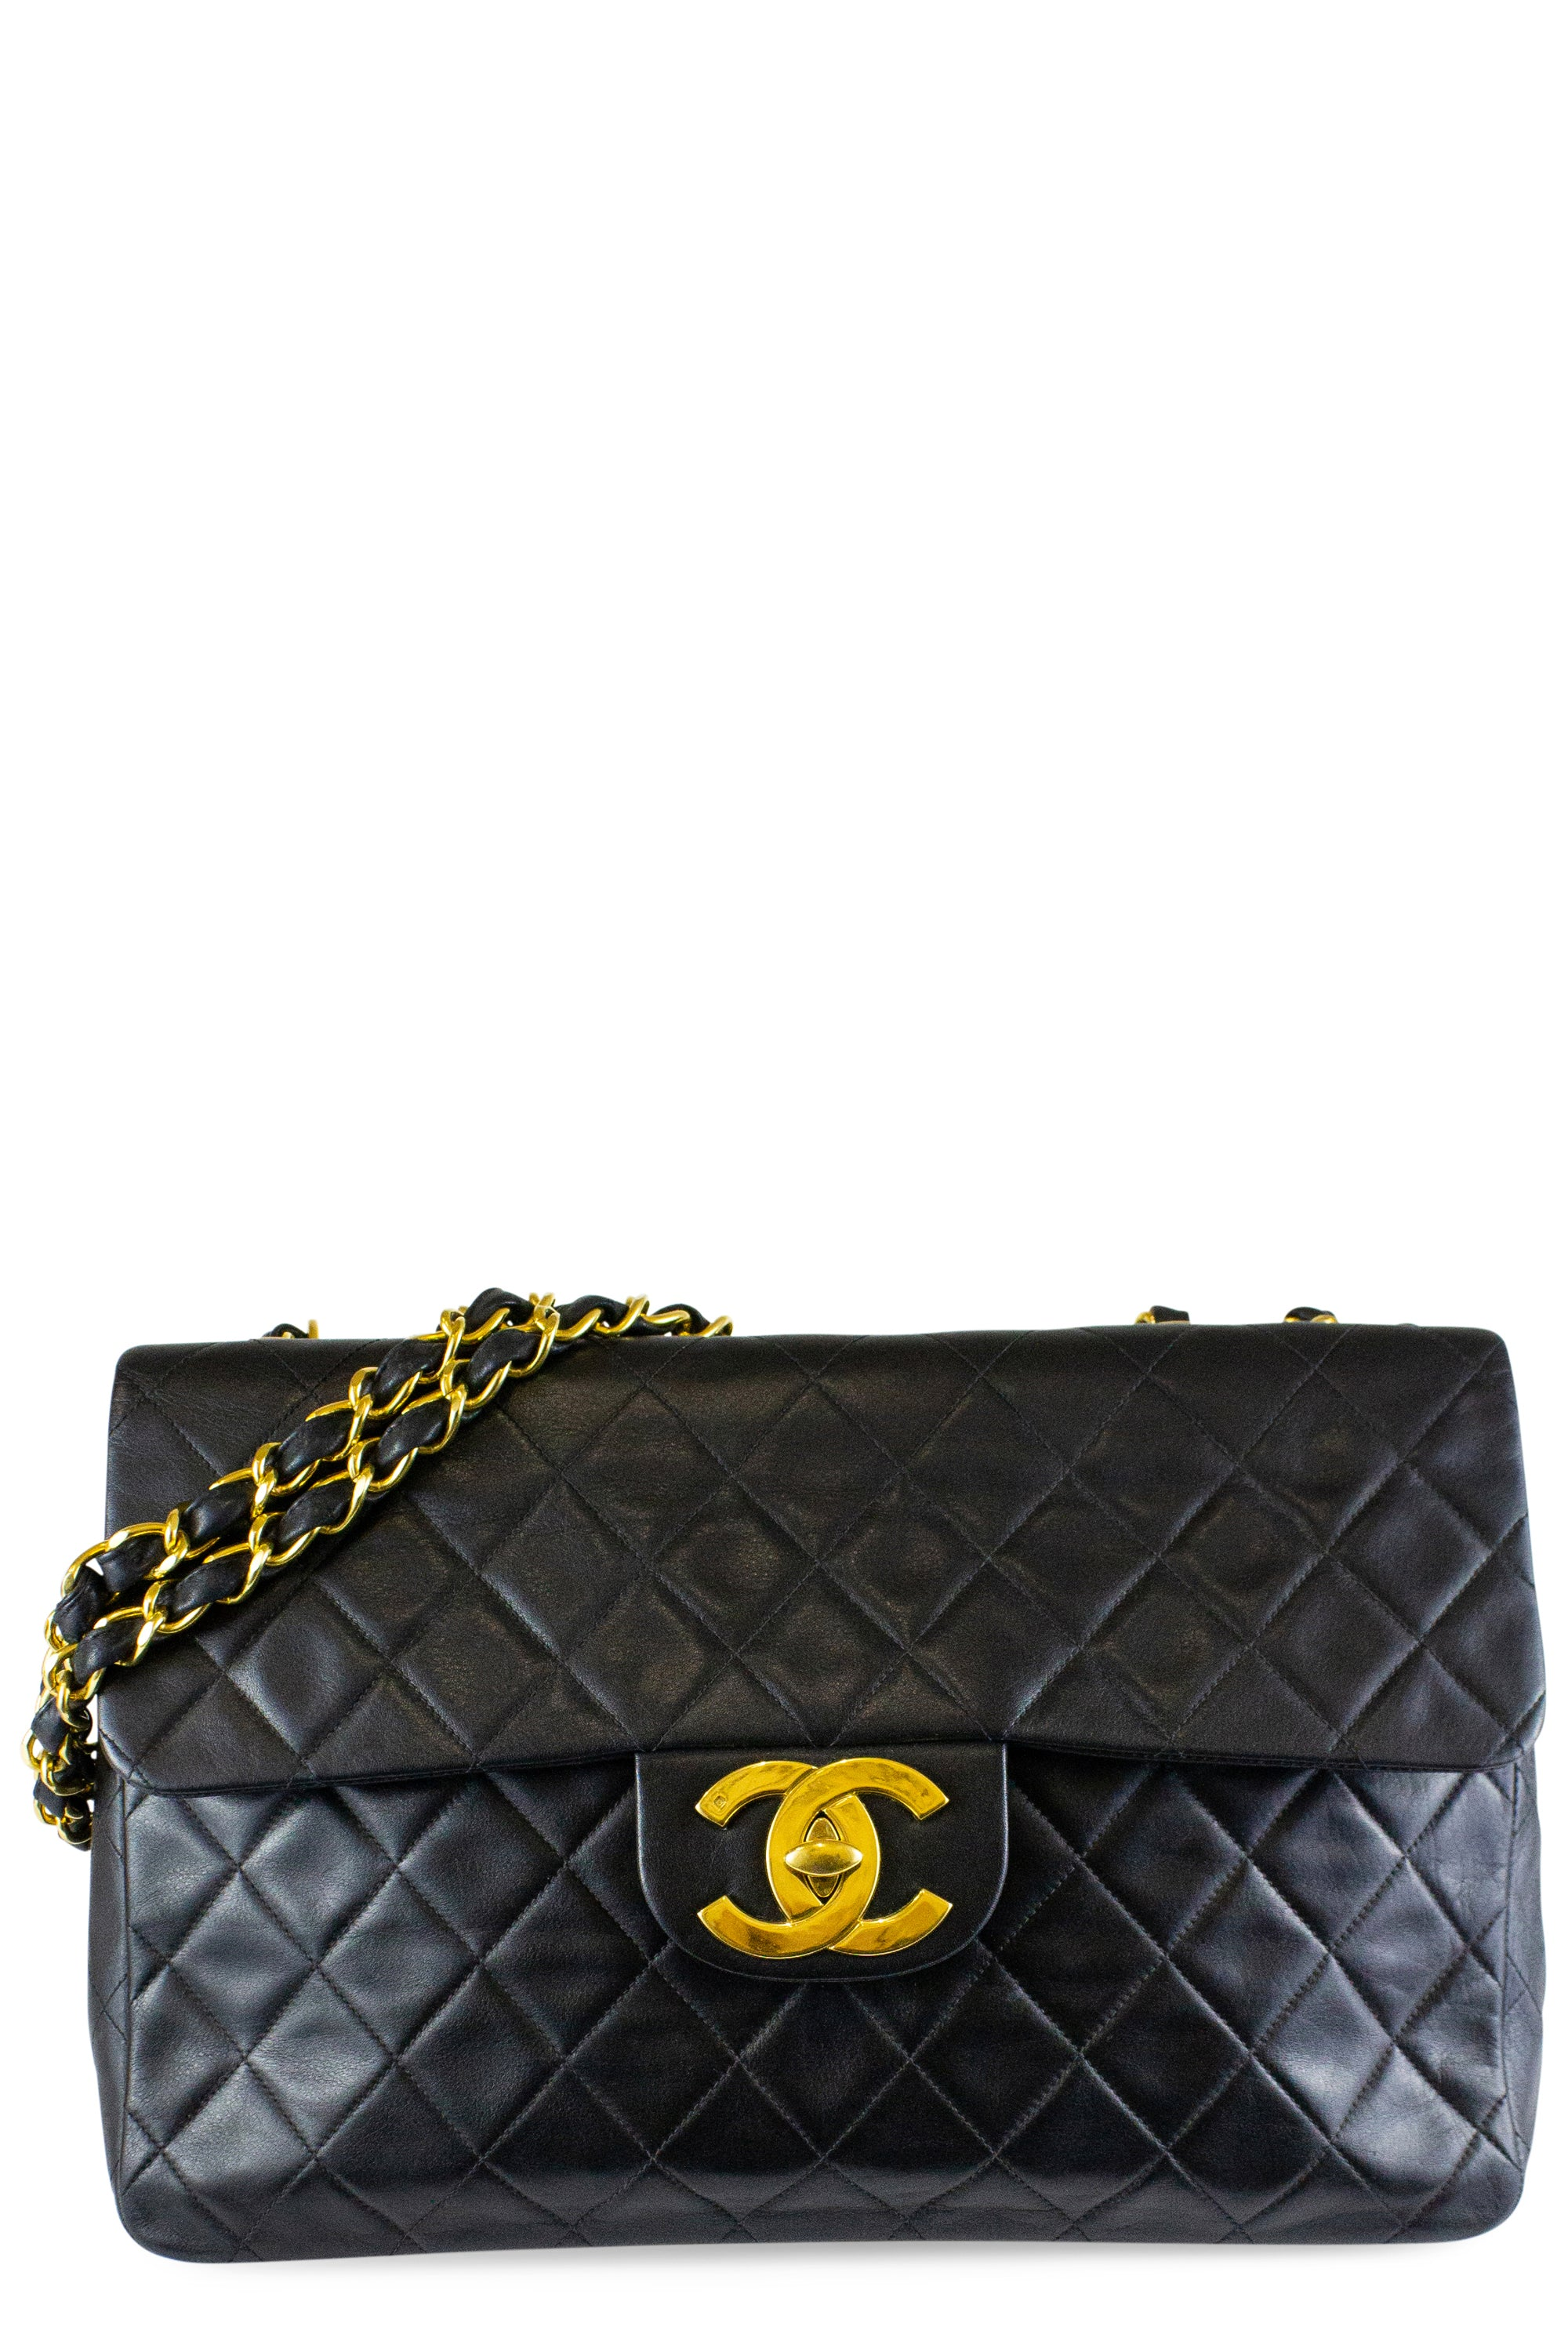 Chanel Vintage Maxi Flap Bag Black Gold Hardware